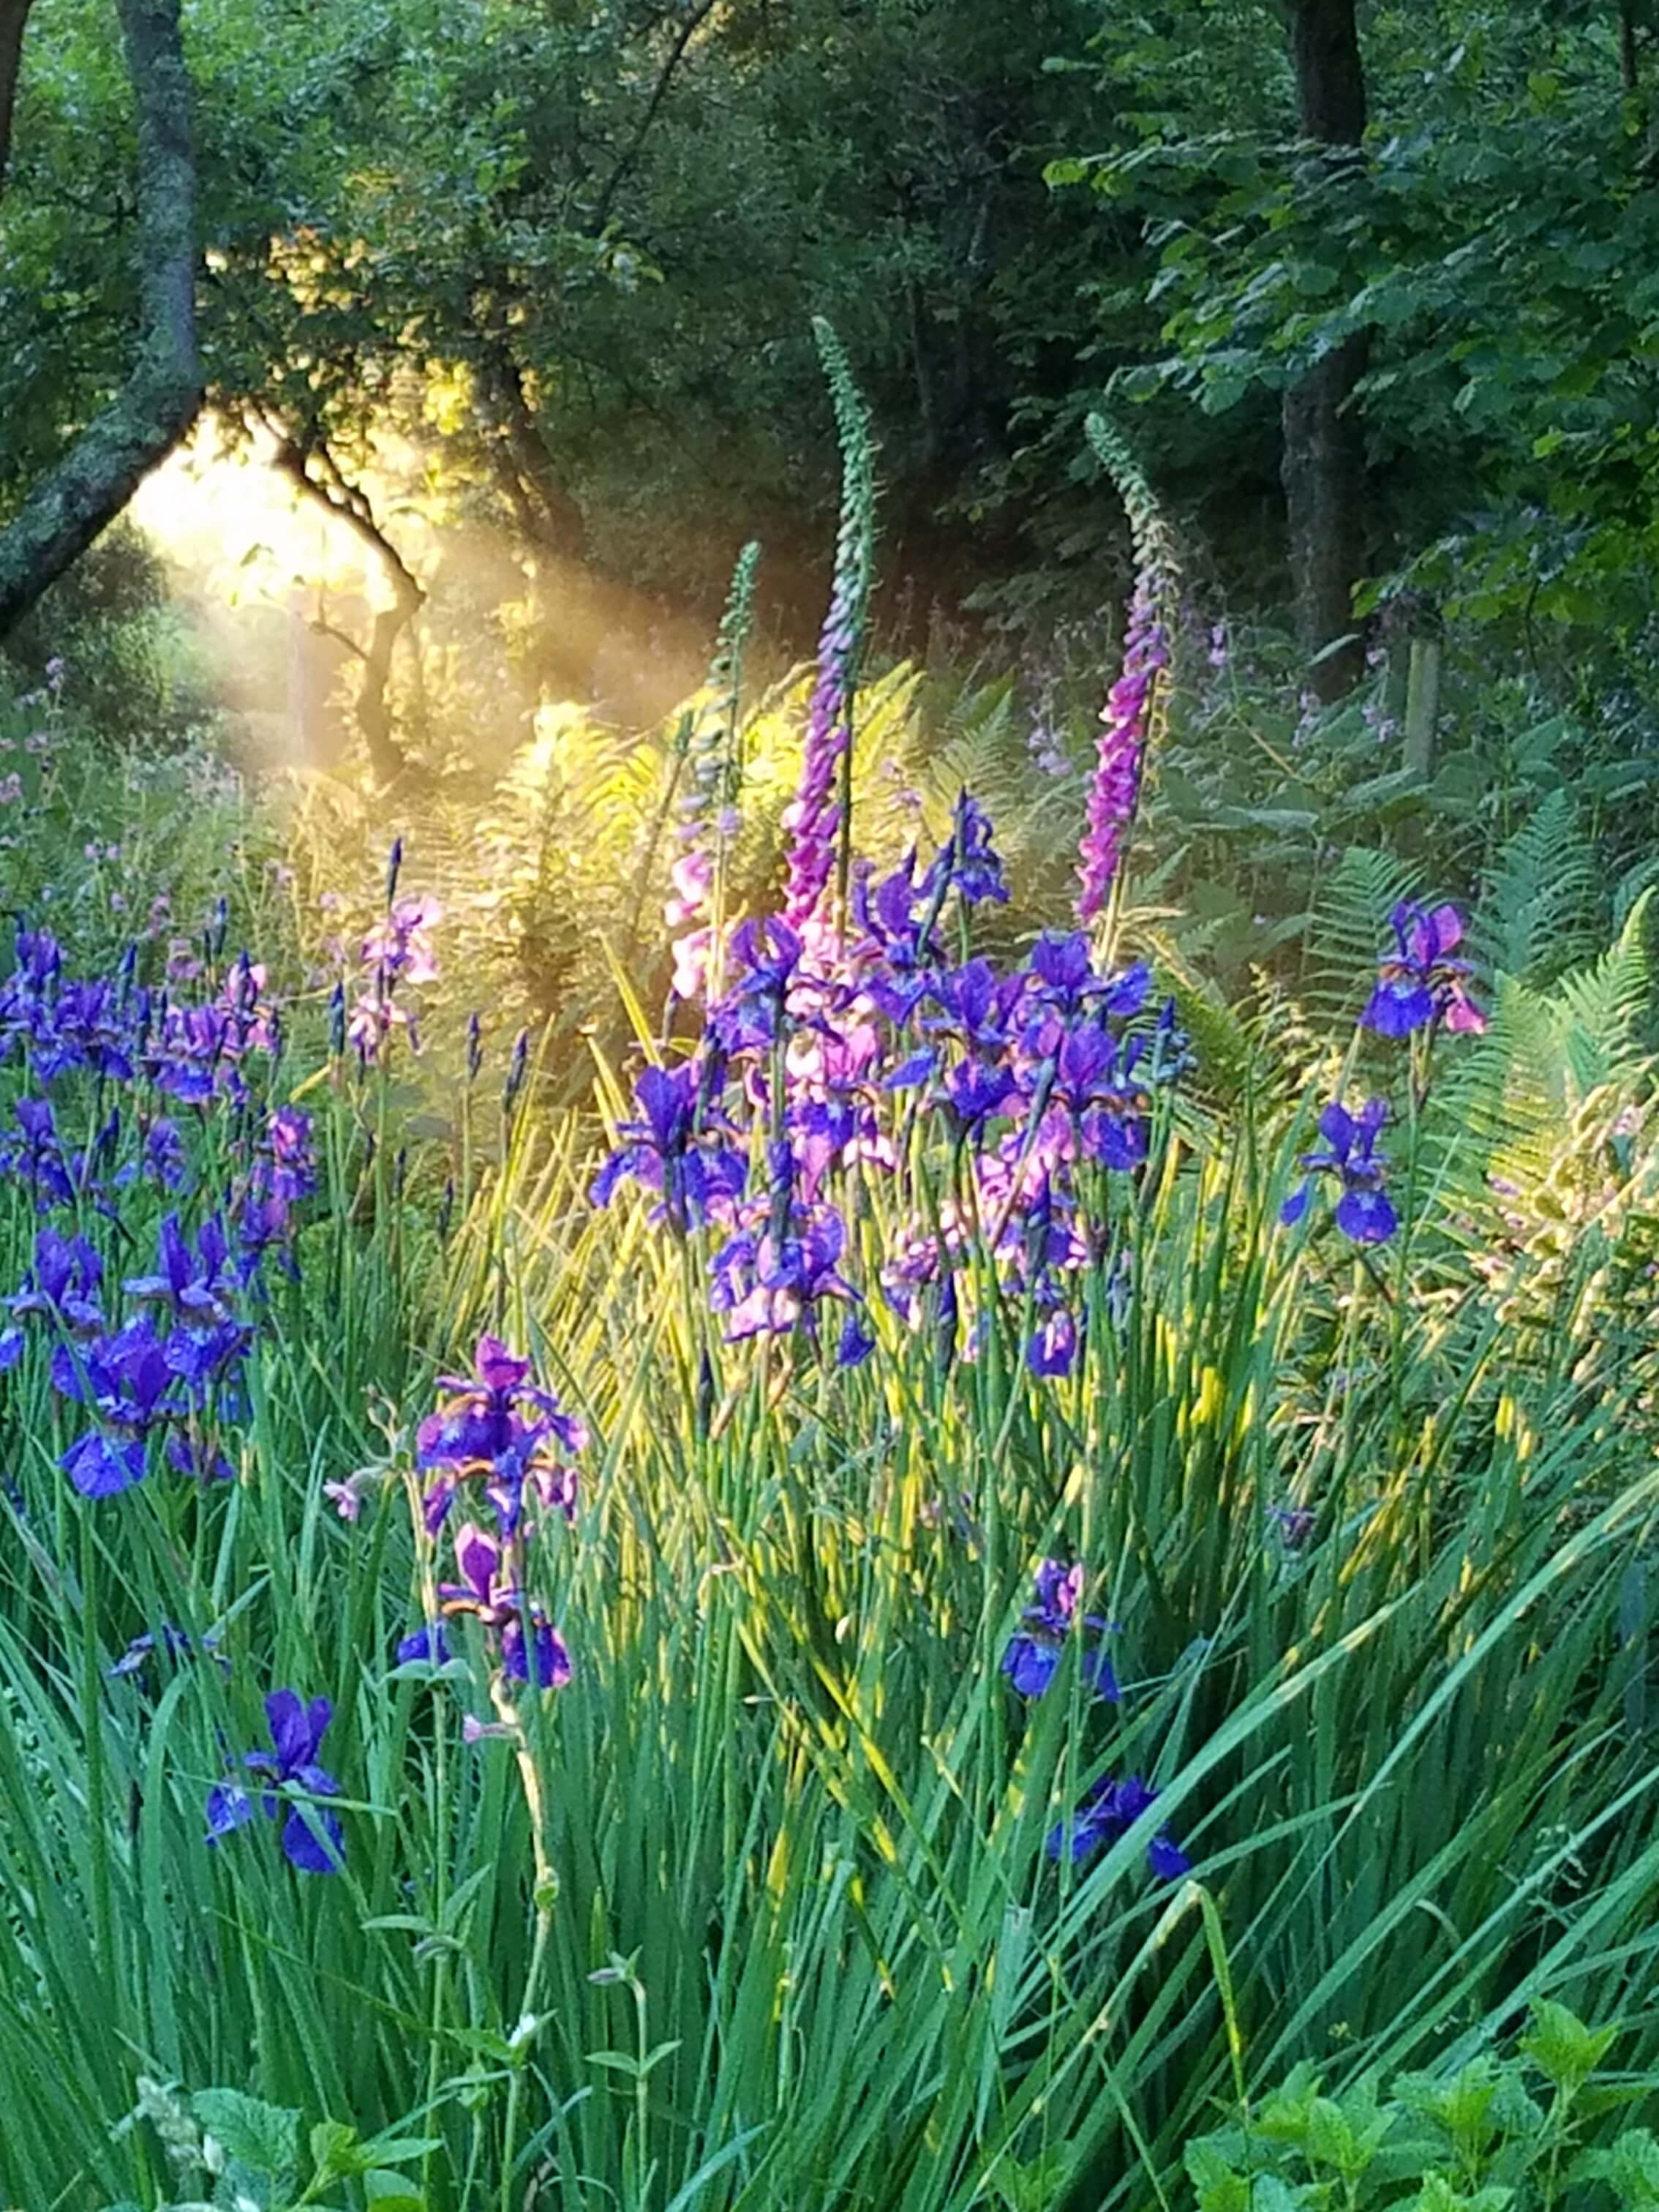 Sunset casts its magic over irises and foxgloves in Ringstead